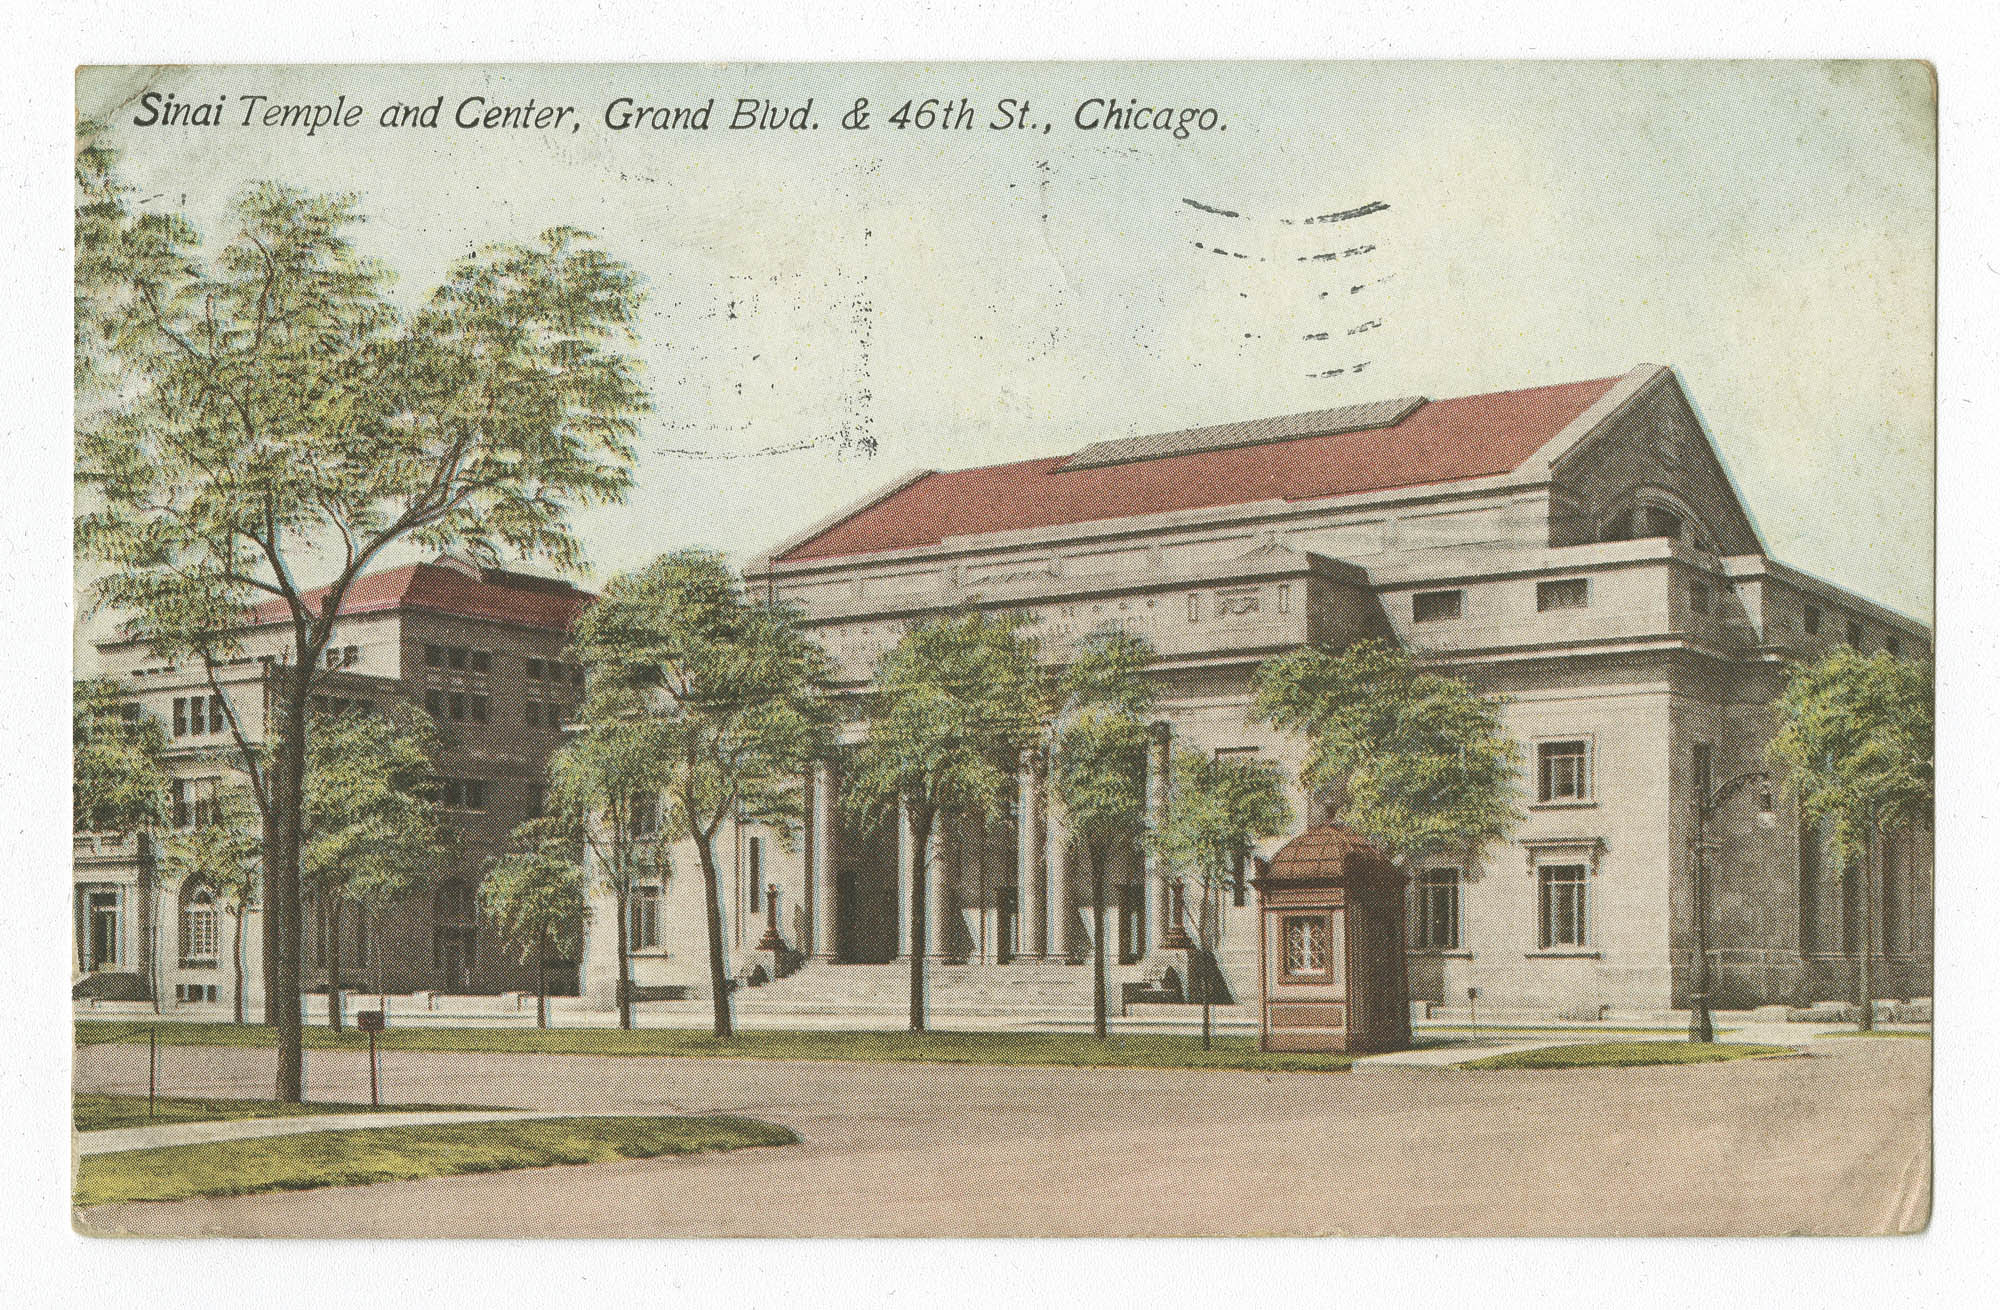 Sinai Temple and Center, Grand Blvd. & 46th St., Chicago